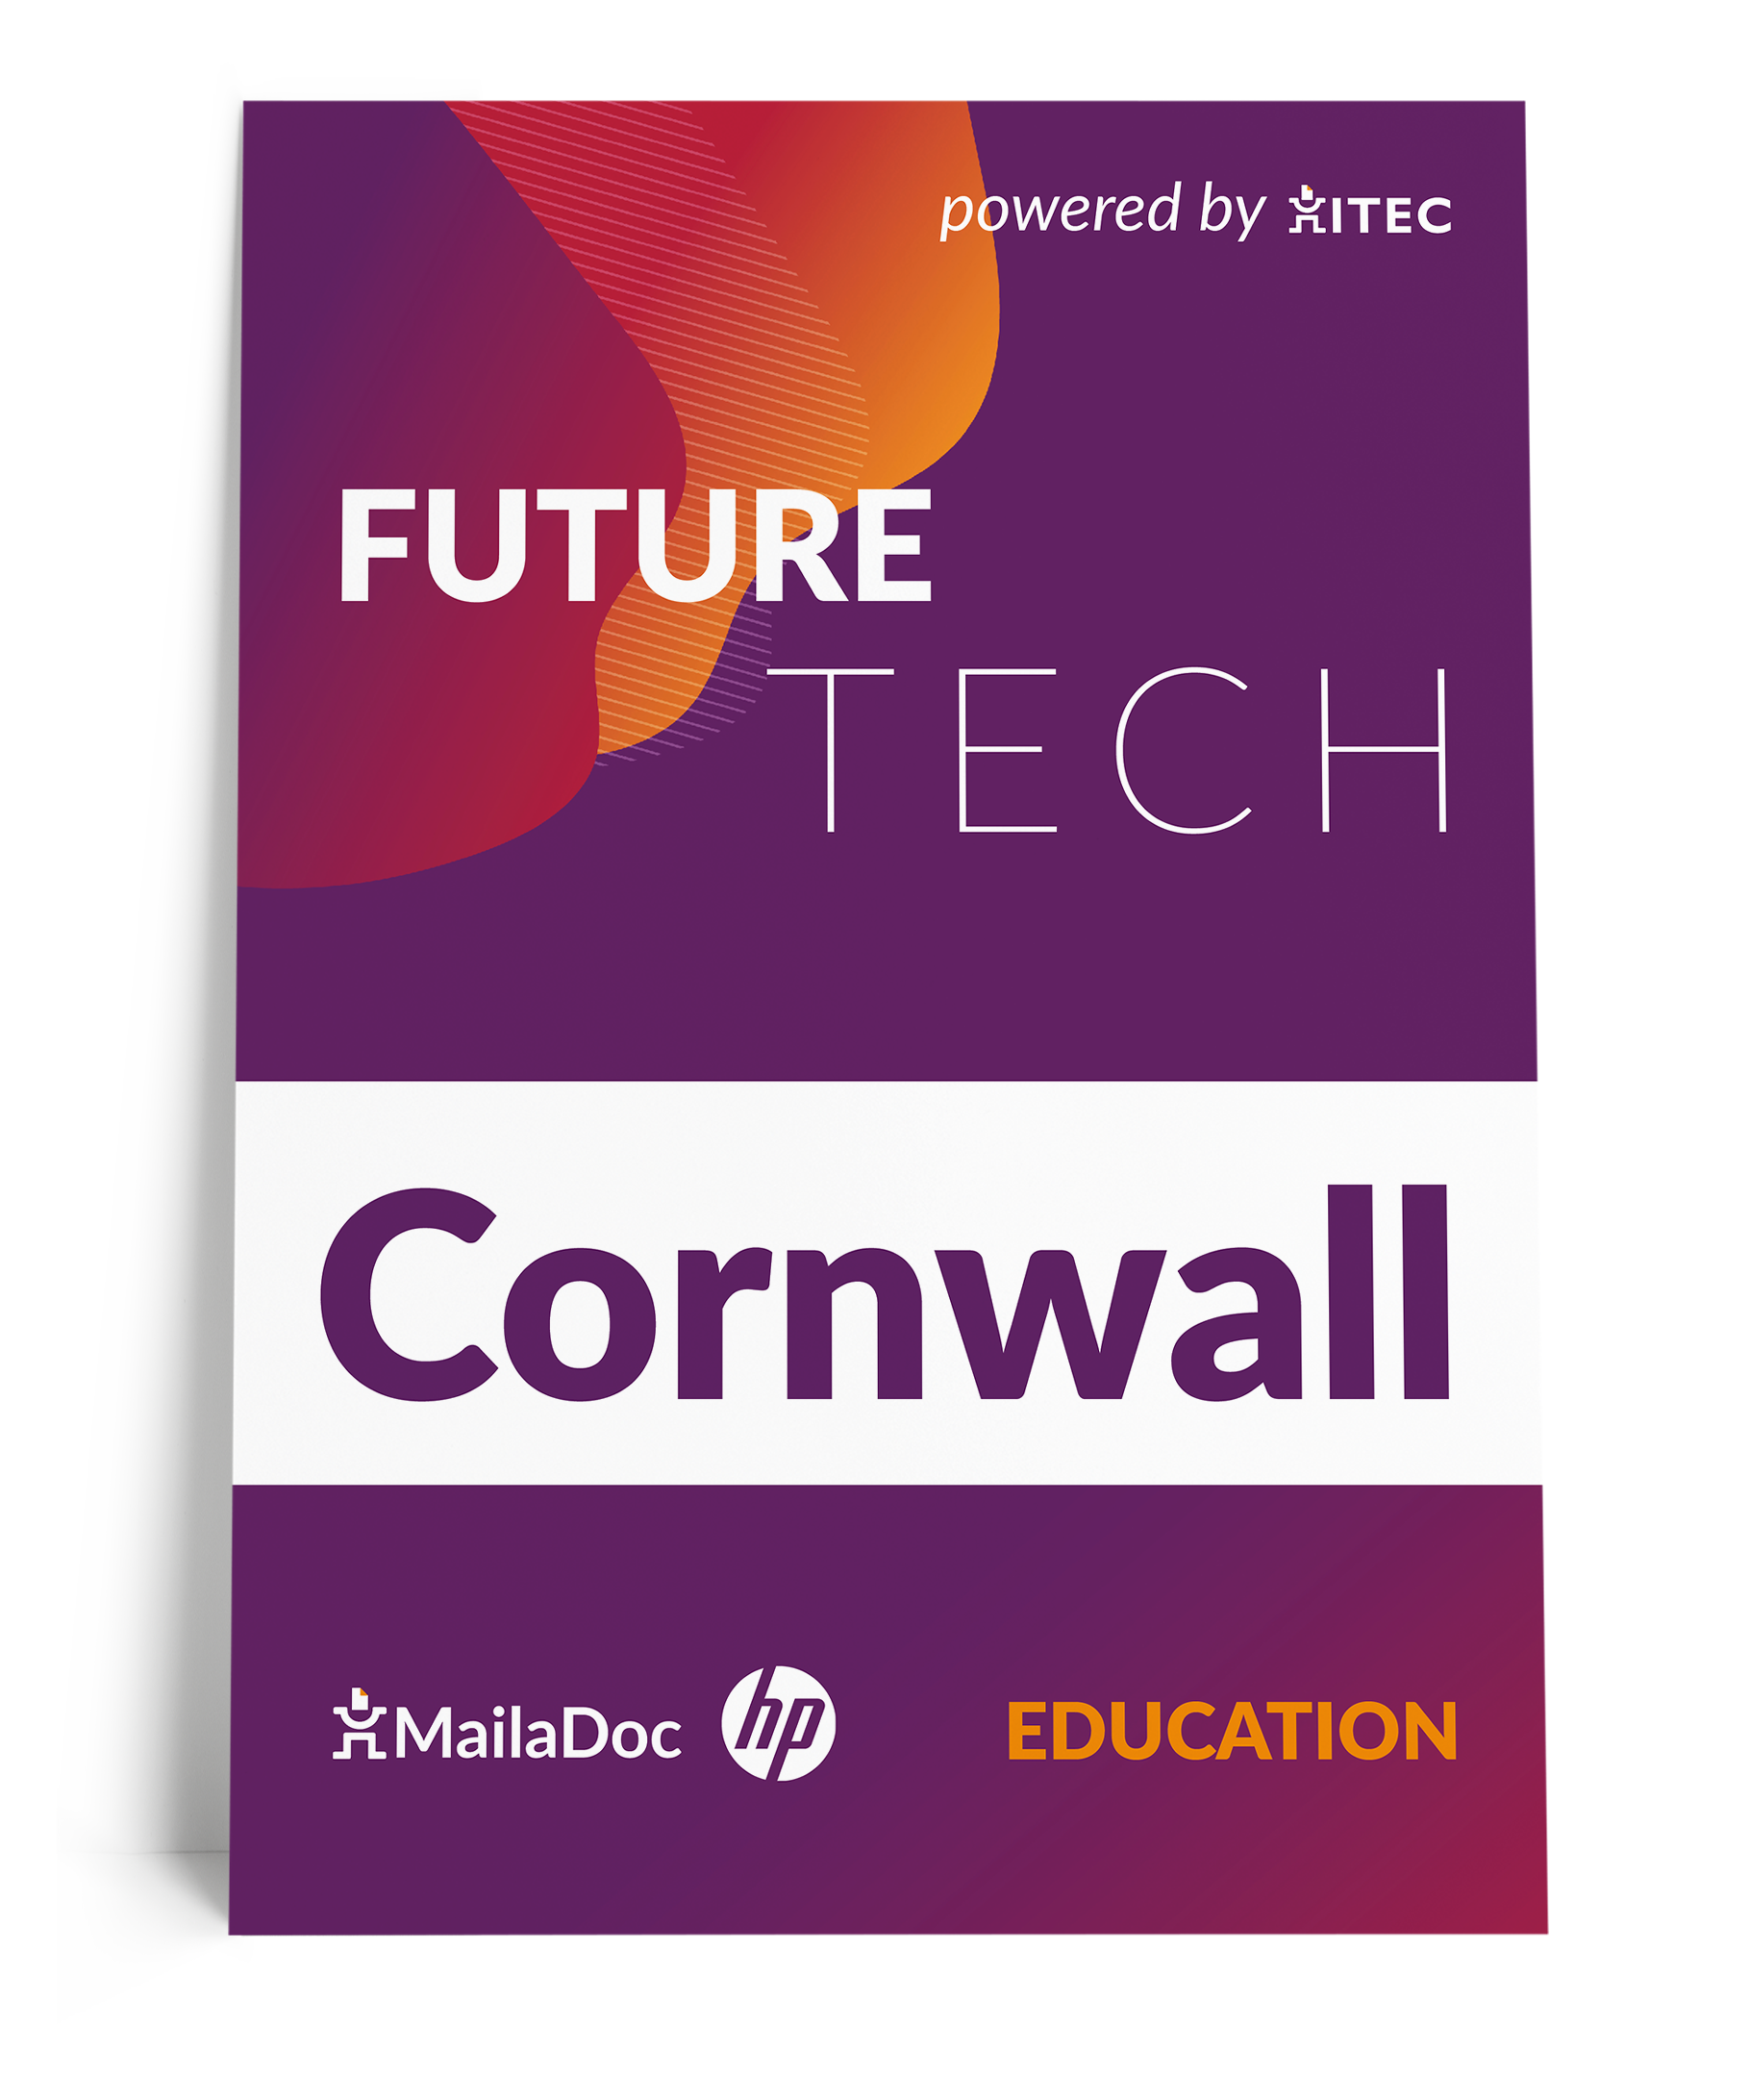 Future%20Tech%20Cornwall%20mockup%20-%20Education